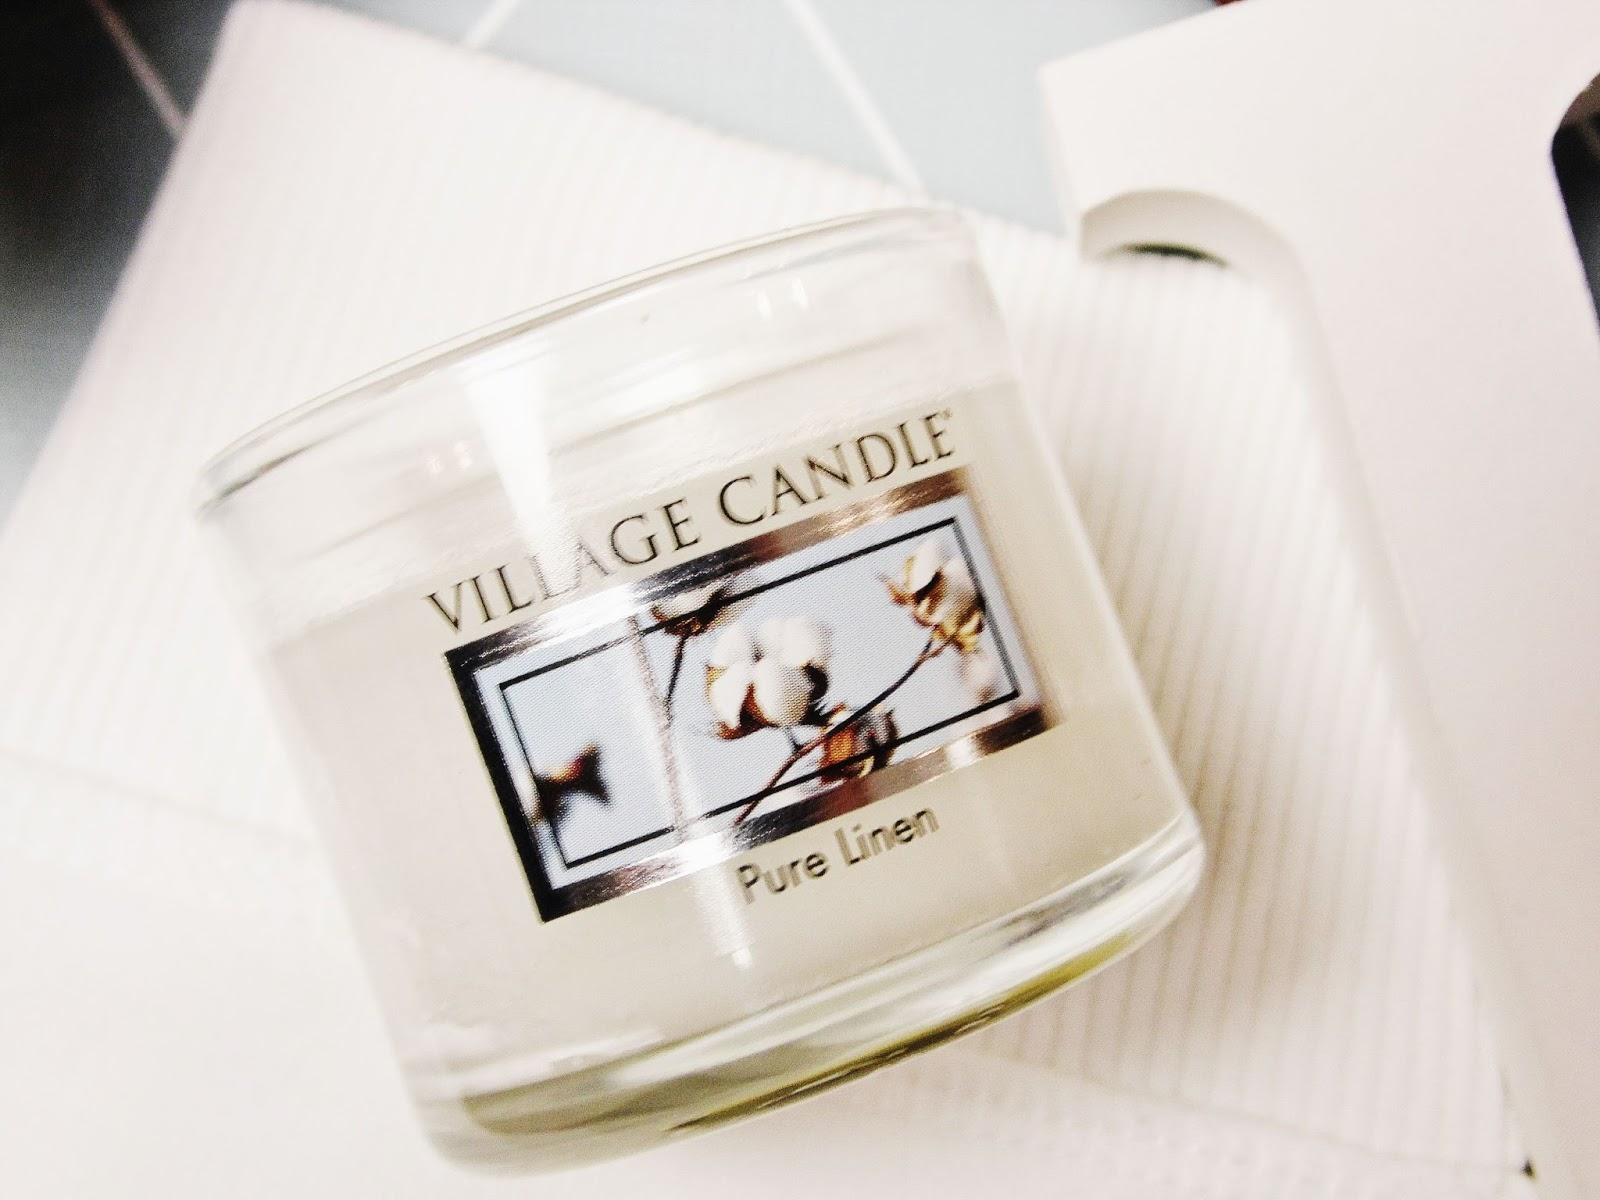 pure linen village candle recenzja